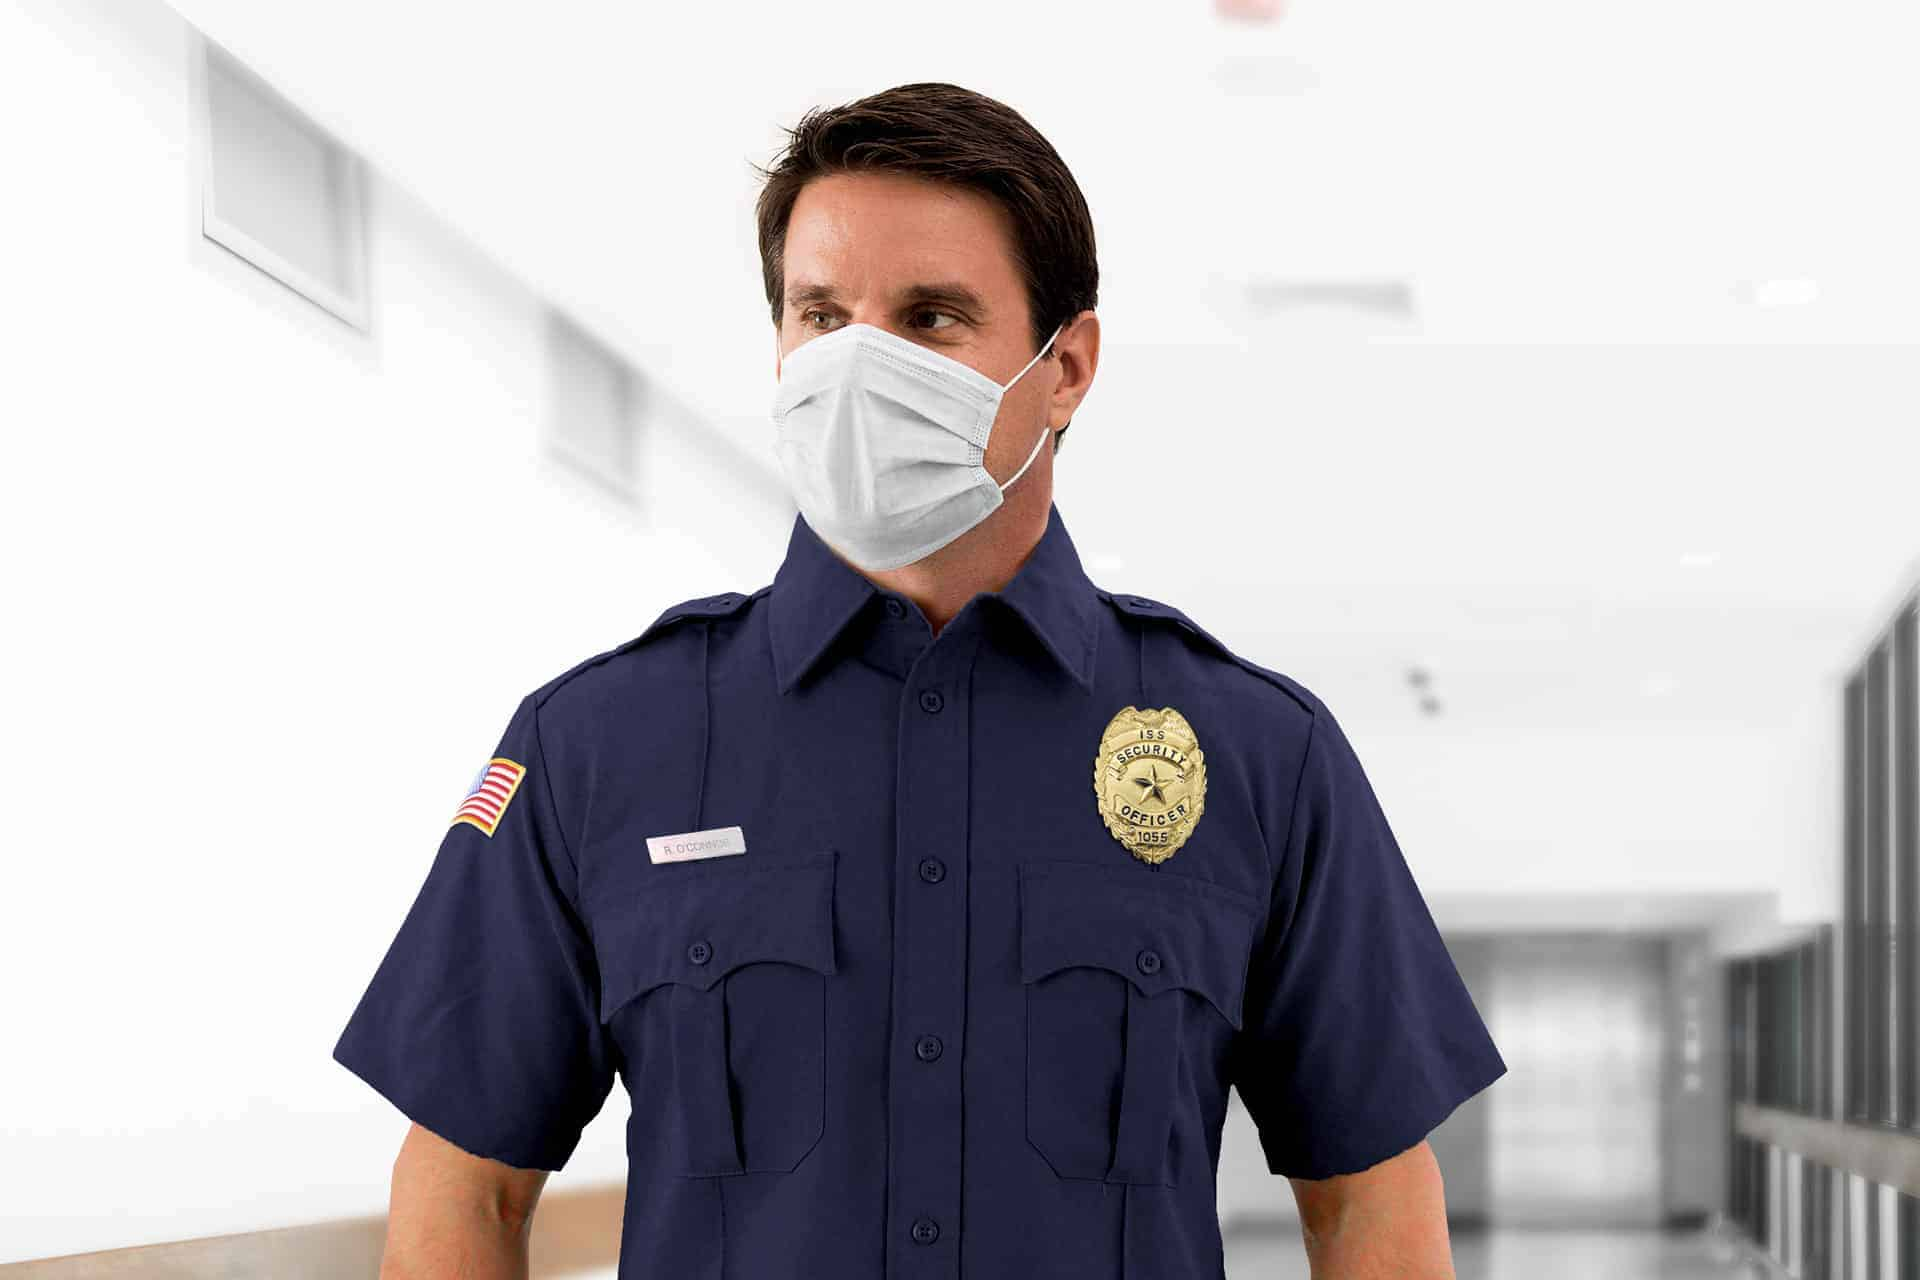 NYC security guard wearing a surgical mask standing in a hallway